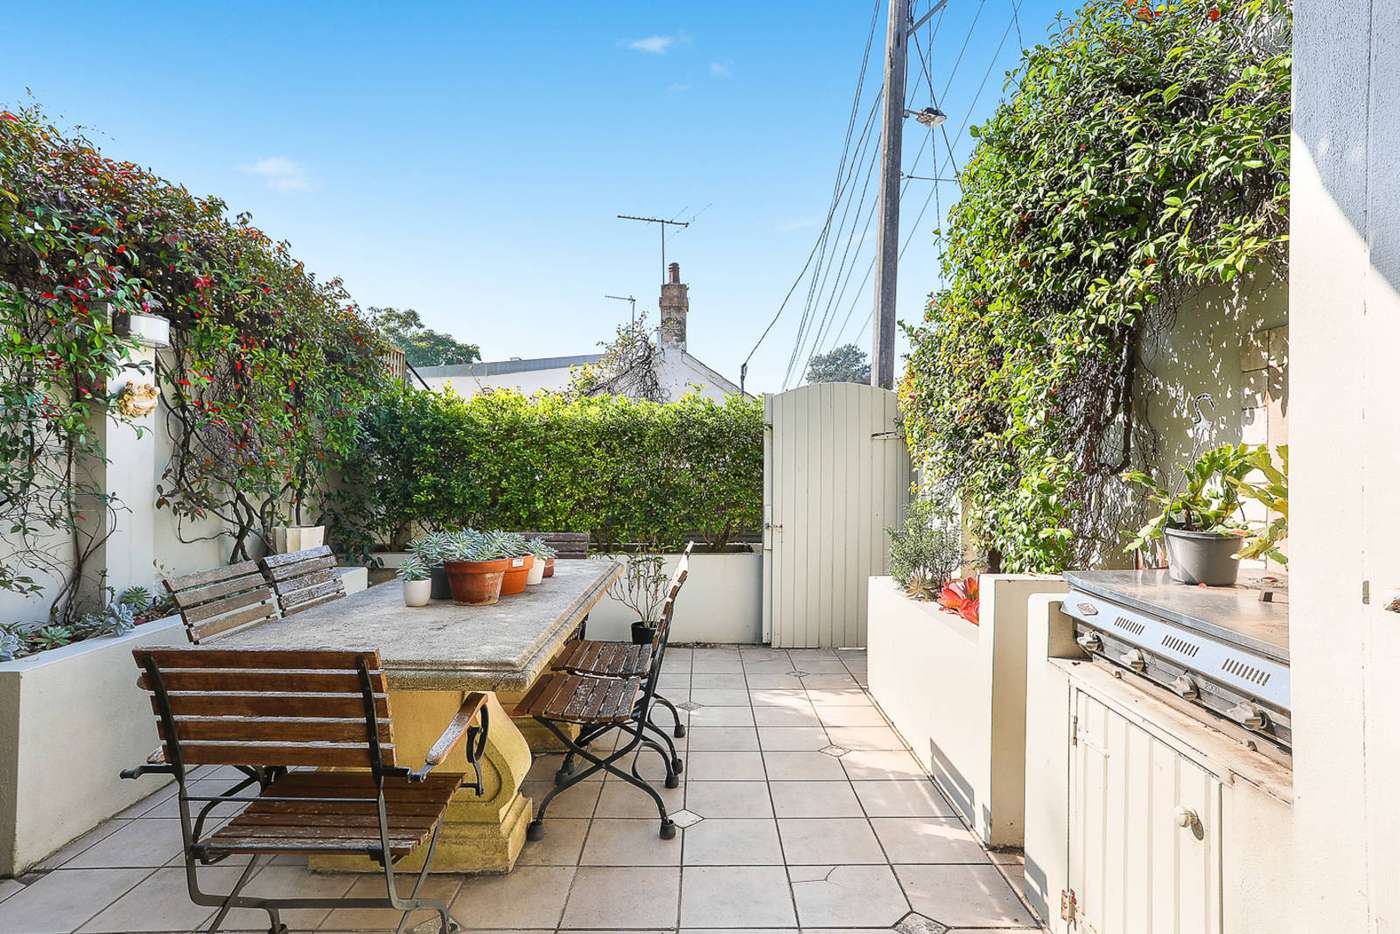 Main view of Homely terrace listing, 13 Victoria Avenue, Woollahra NSW 2025